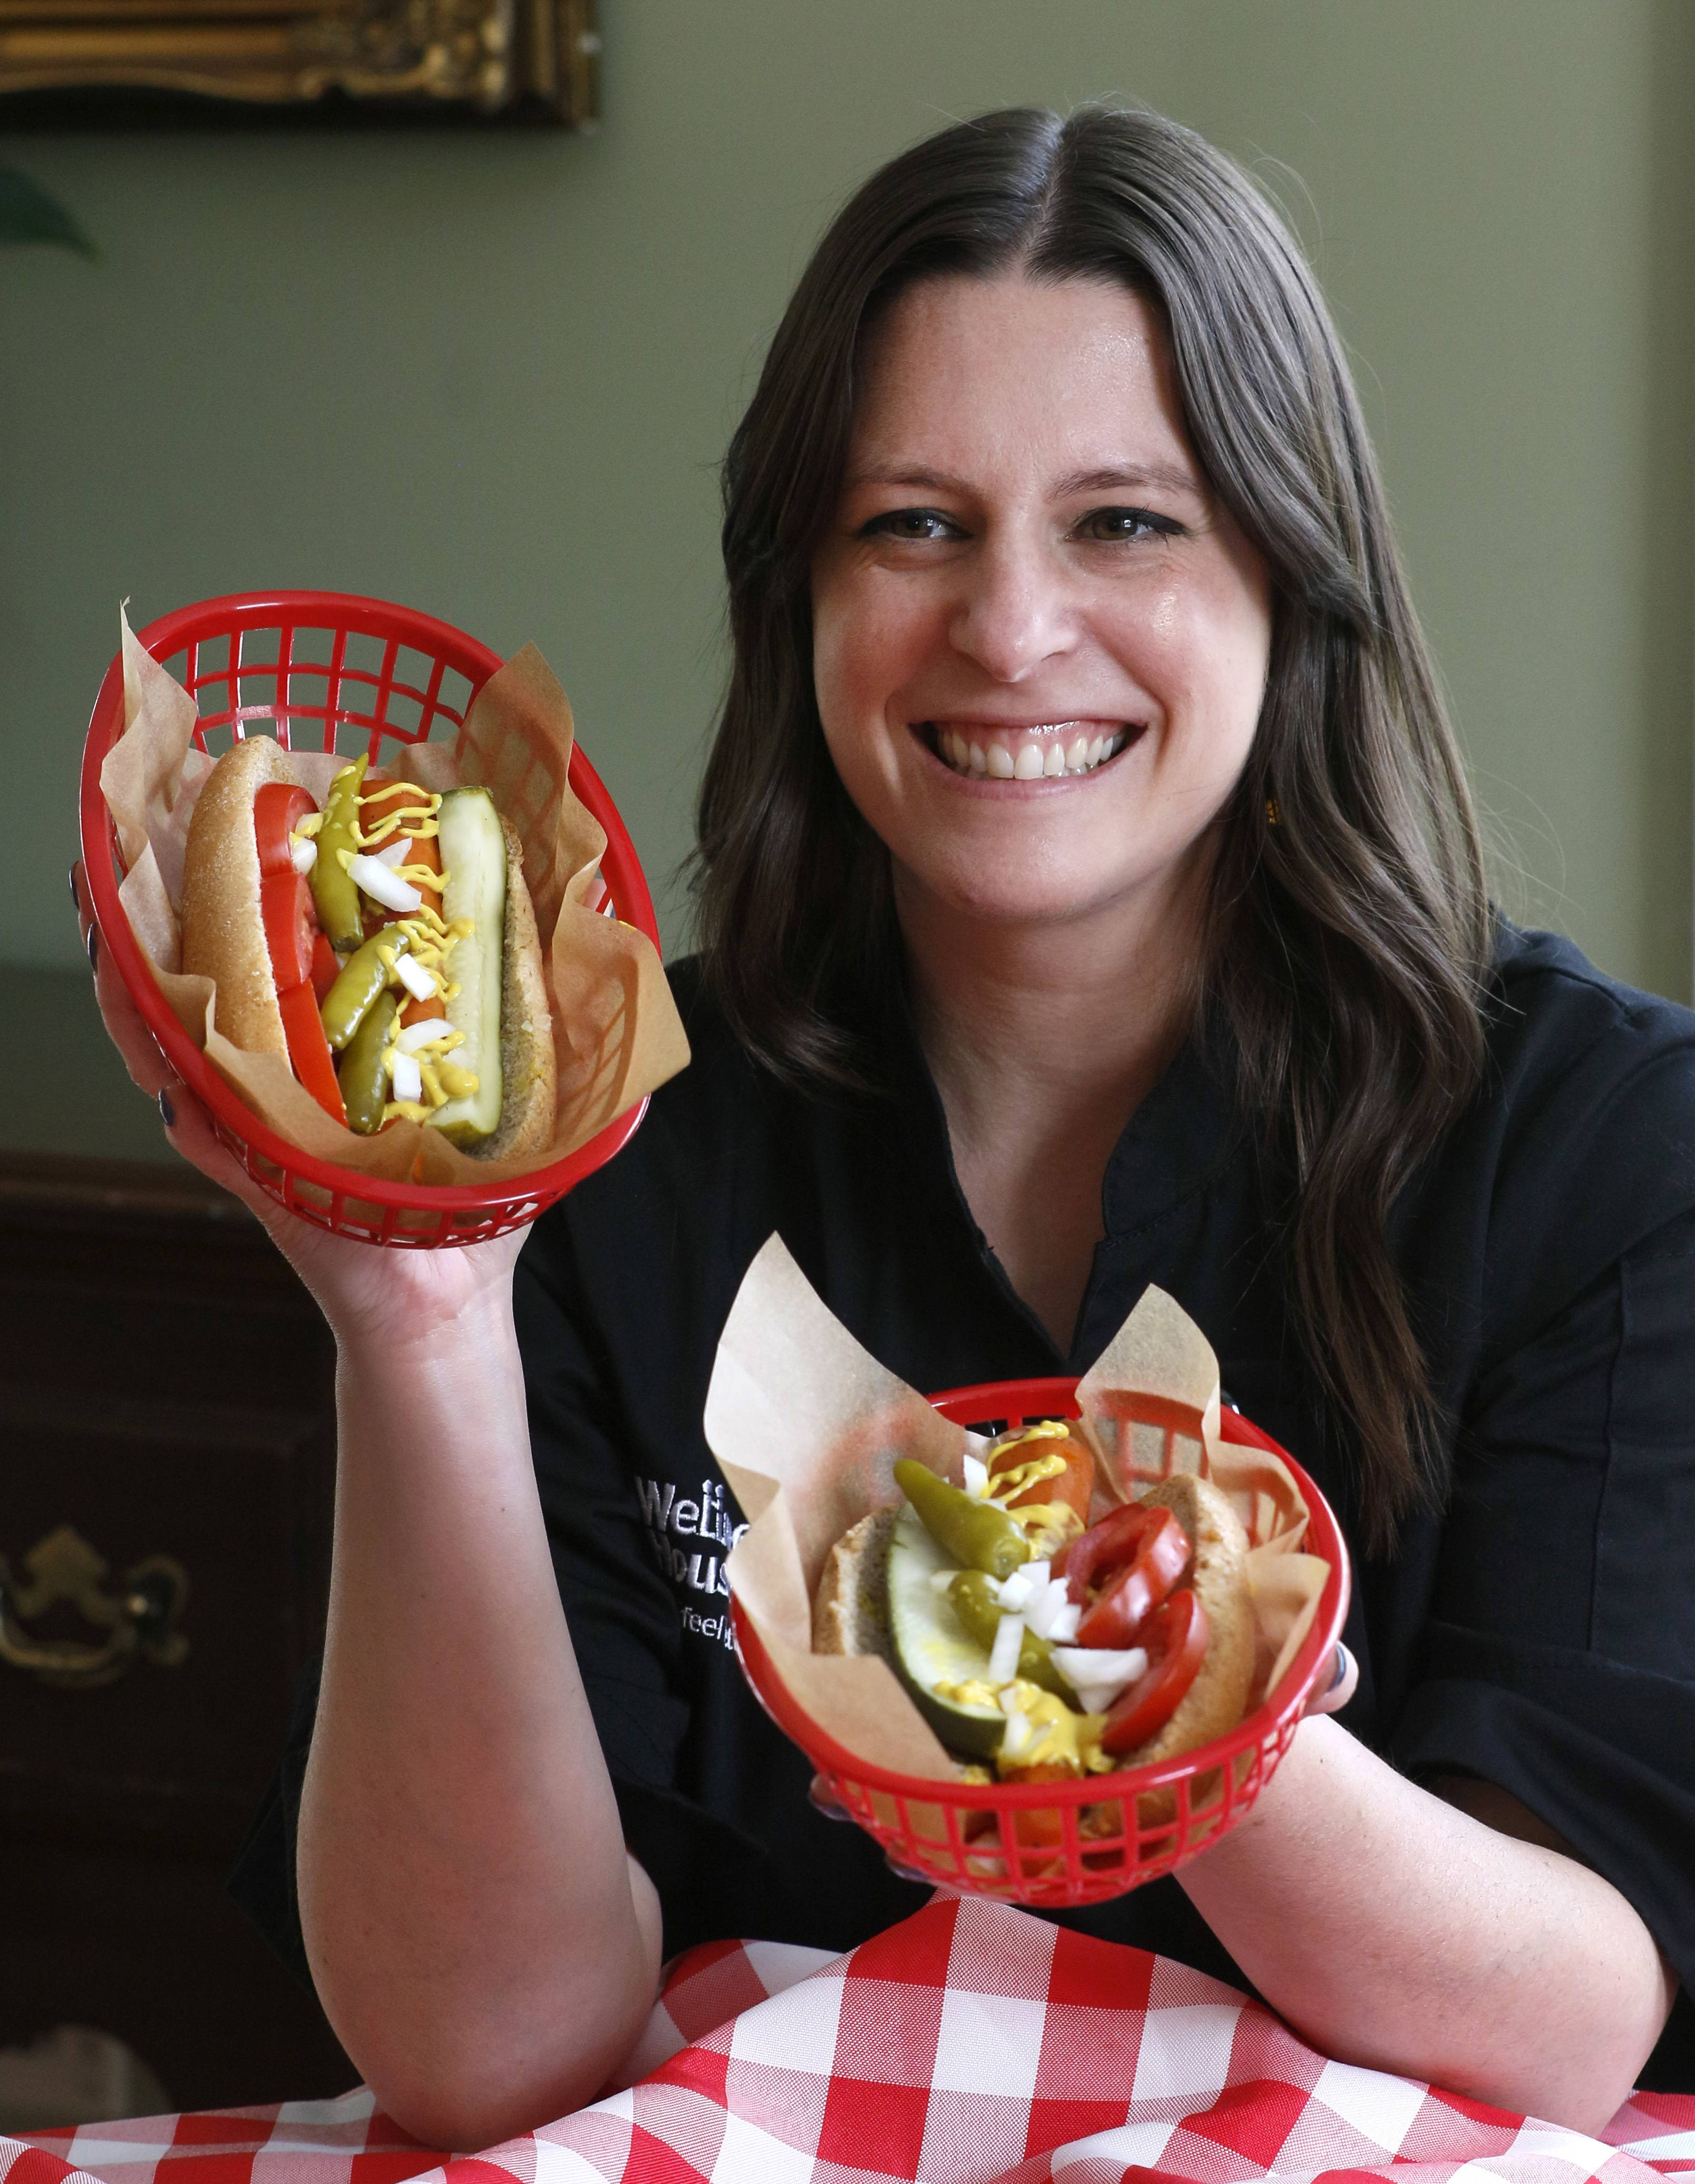 Angela Dennison, RD, LDN, oncology dietitian, for the Wellness House in Hinsdale creates plant-based recipes like Chicago style carrot dogs.